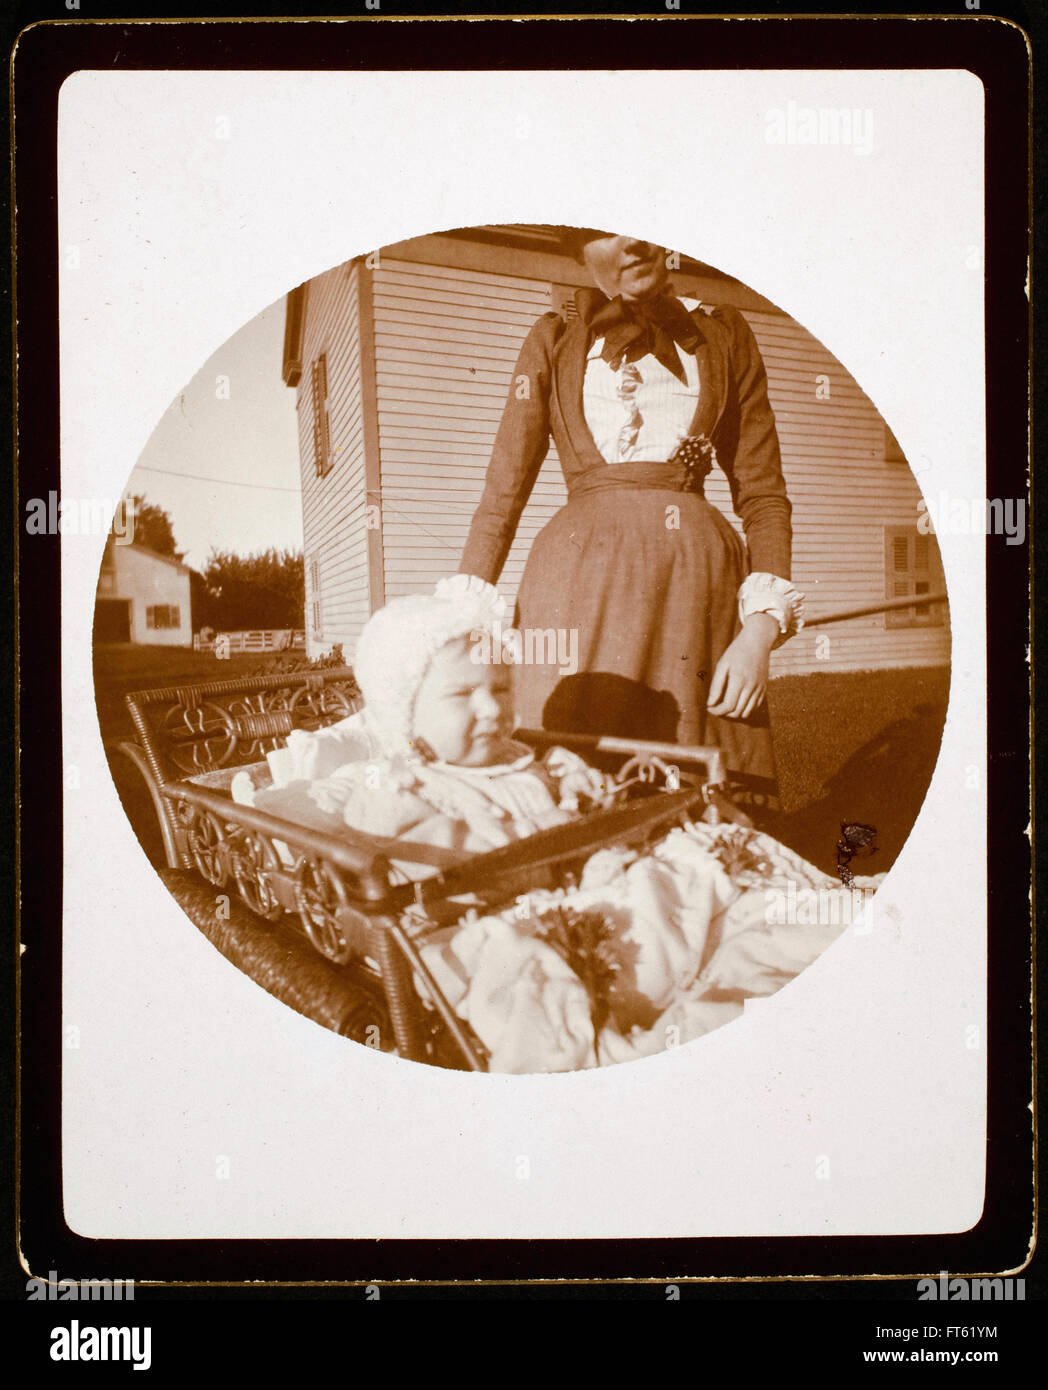 Unidentified Photographer - Baby in carriage, woman standing behind - Stock Image